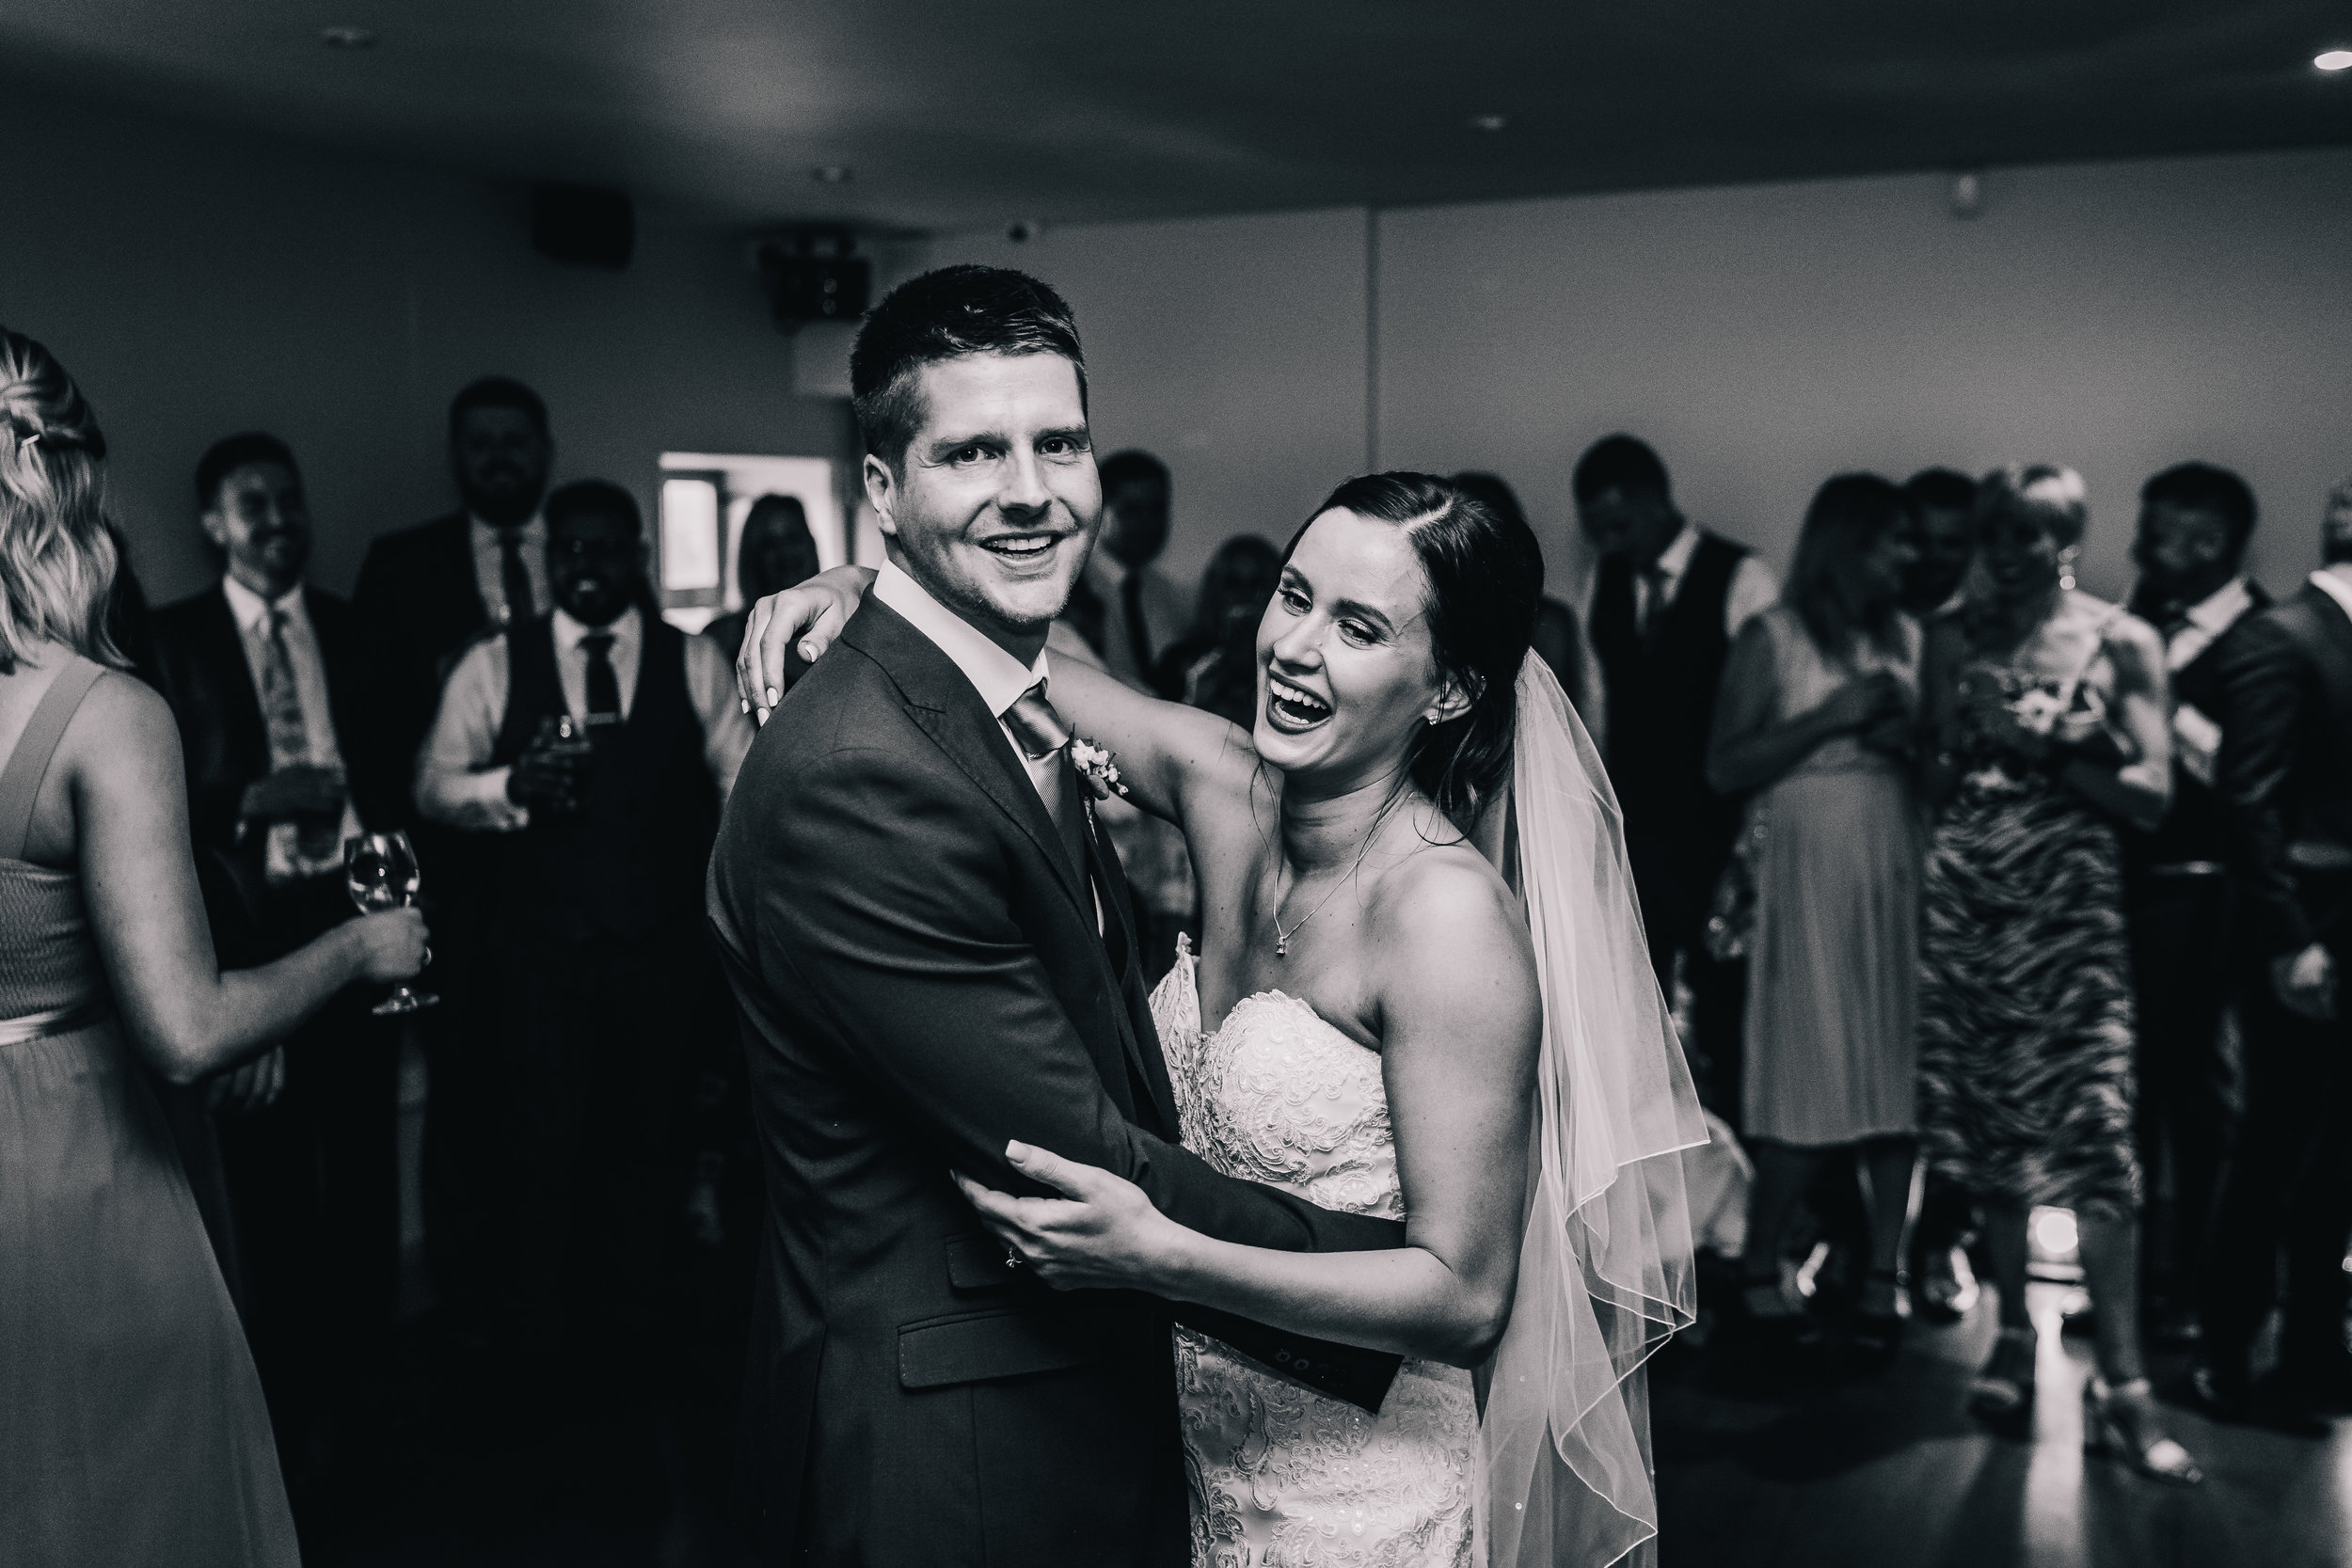 COUPLE FIRST DANCE WEDDING BLACK AND WHITE